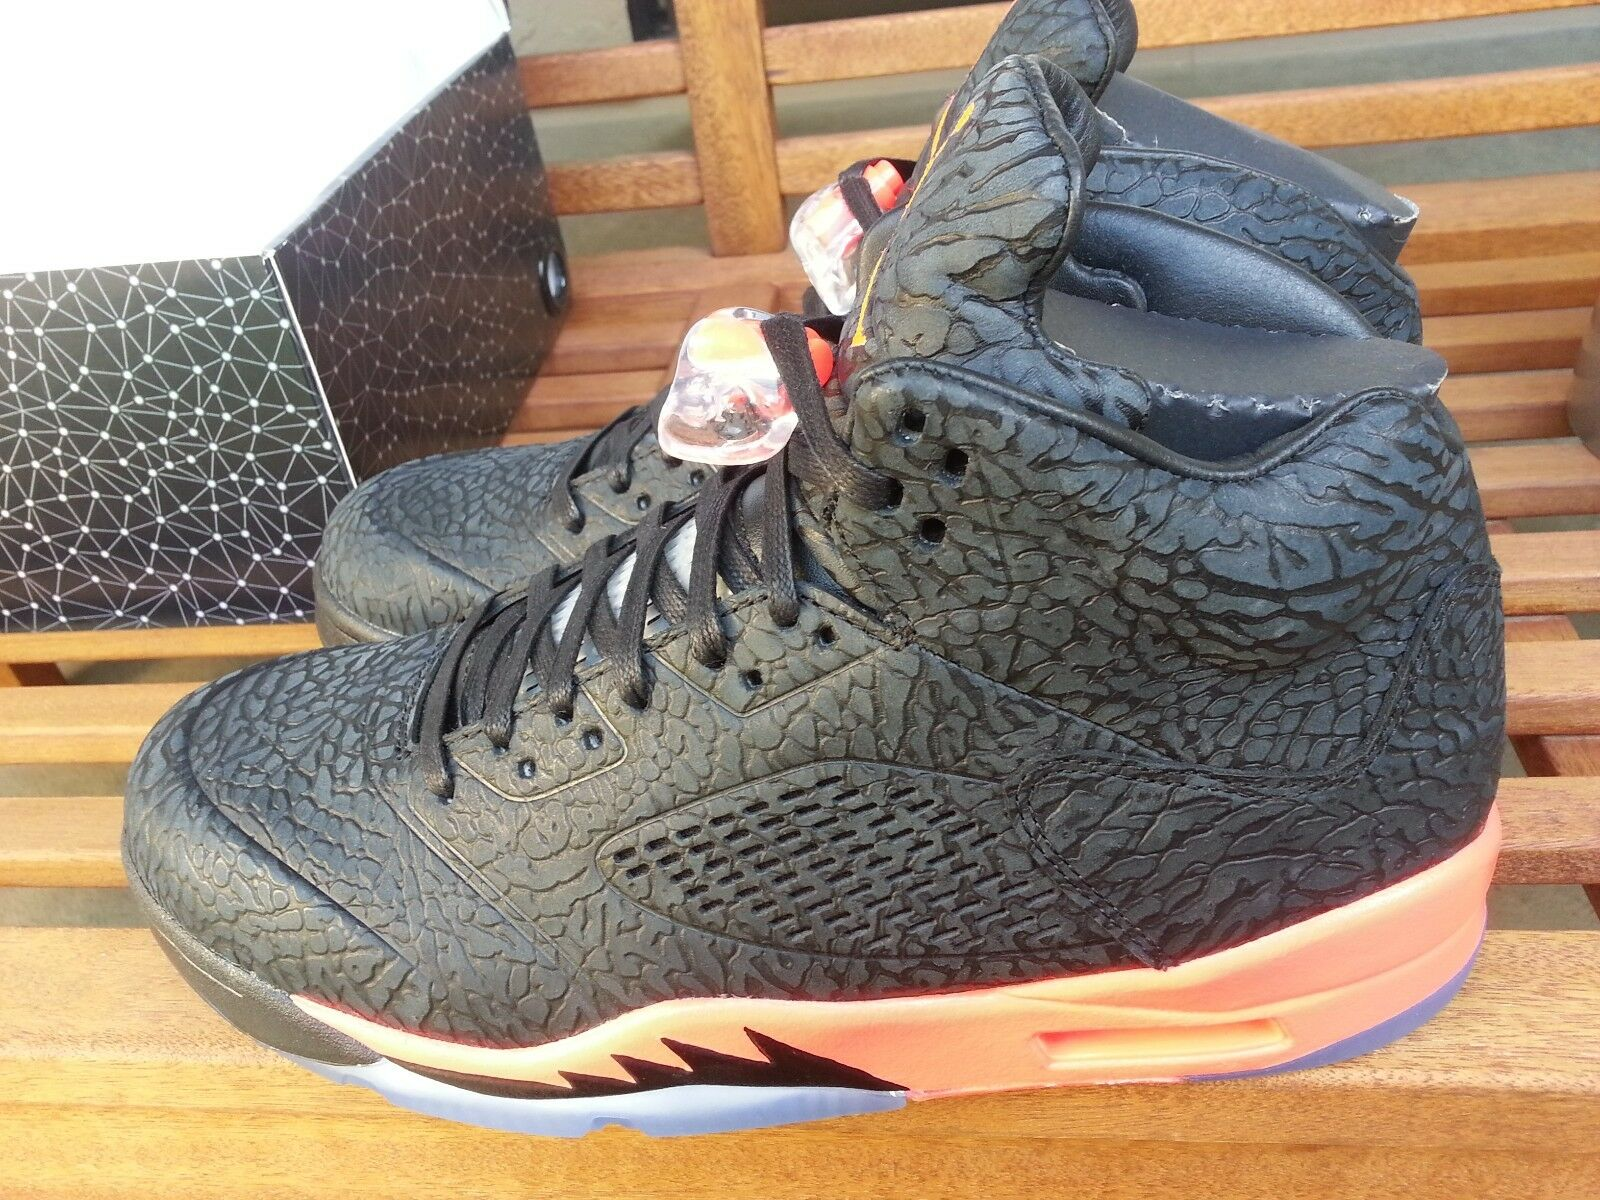 Rare 2013 Air Jordan 5 3Lab5 599581 010 Infrared Size 9.5 DS With Receipt